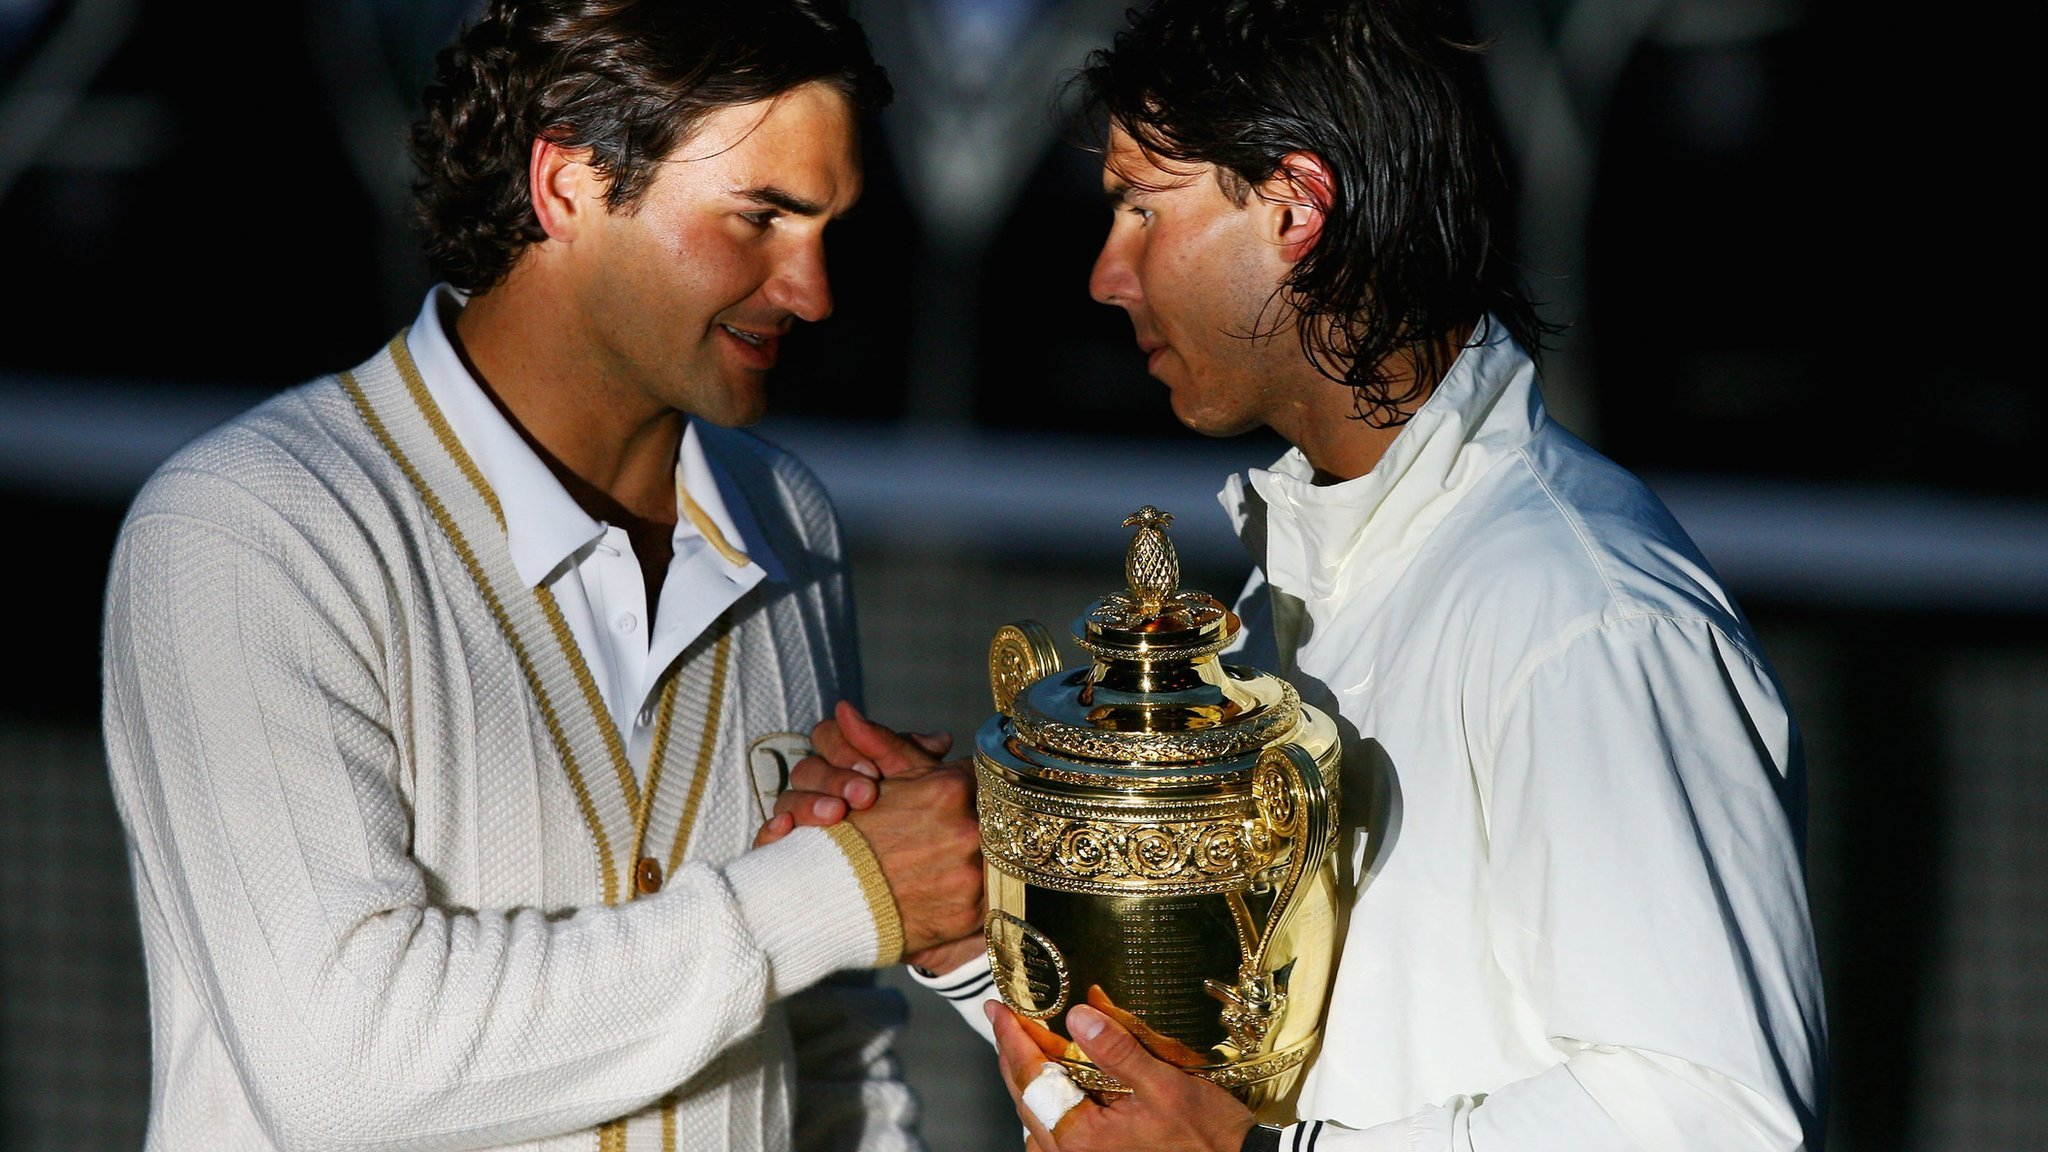 Federer v Nadal 2008 final - the inside story of 'the greatest match ever played'